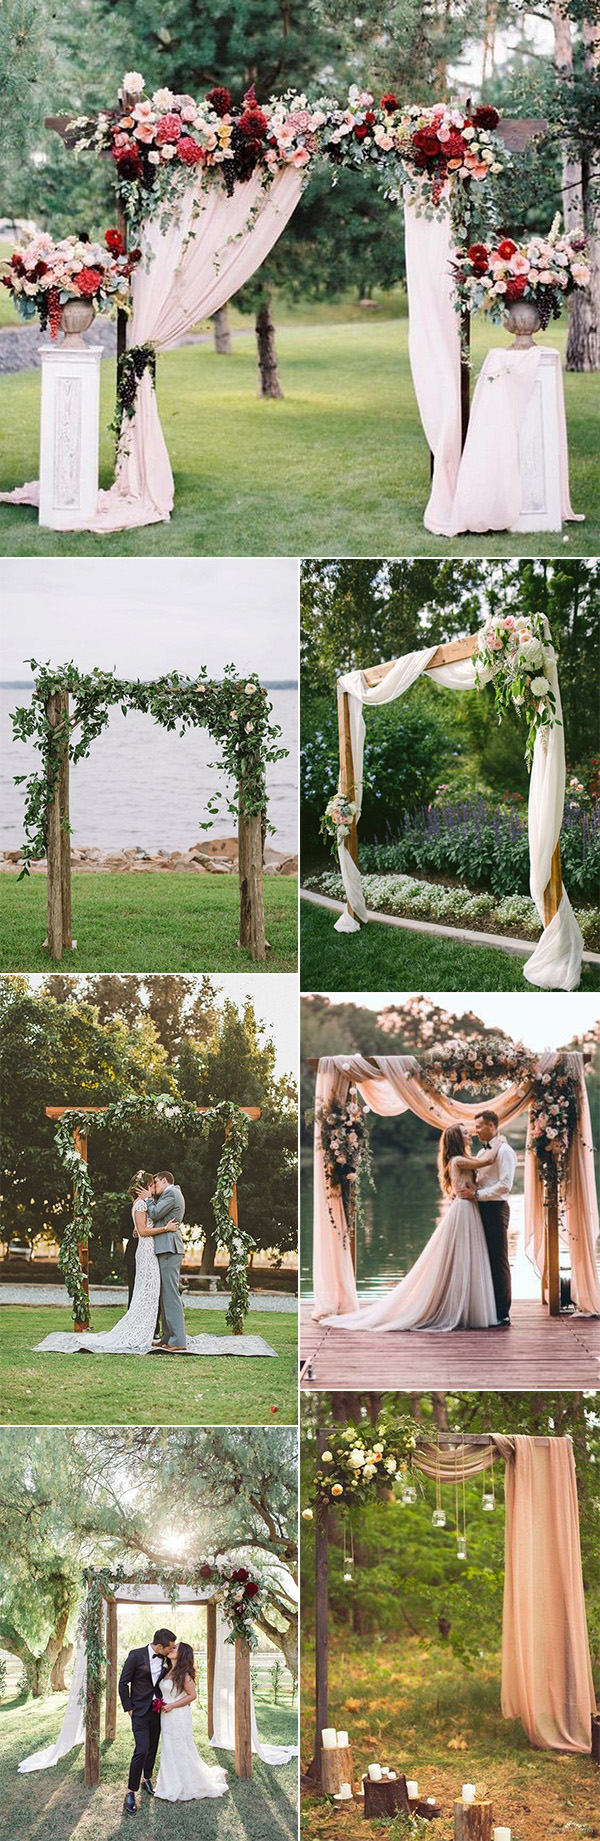 wedding ideas for outdoor ceremony 35 brilliant outdoor wedding decoration ideas for 2018 28151